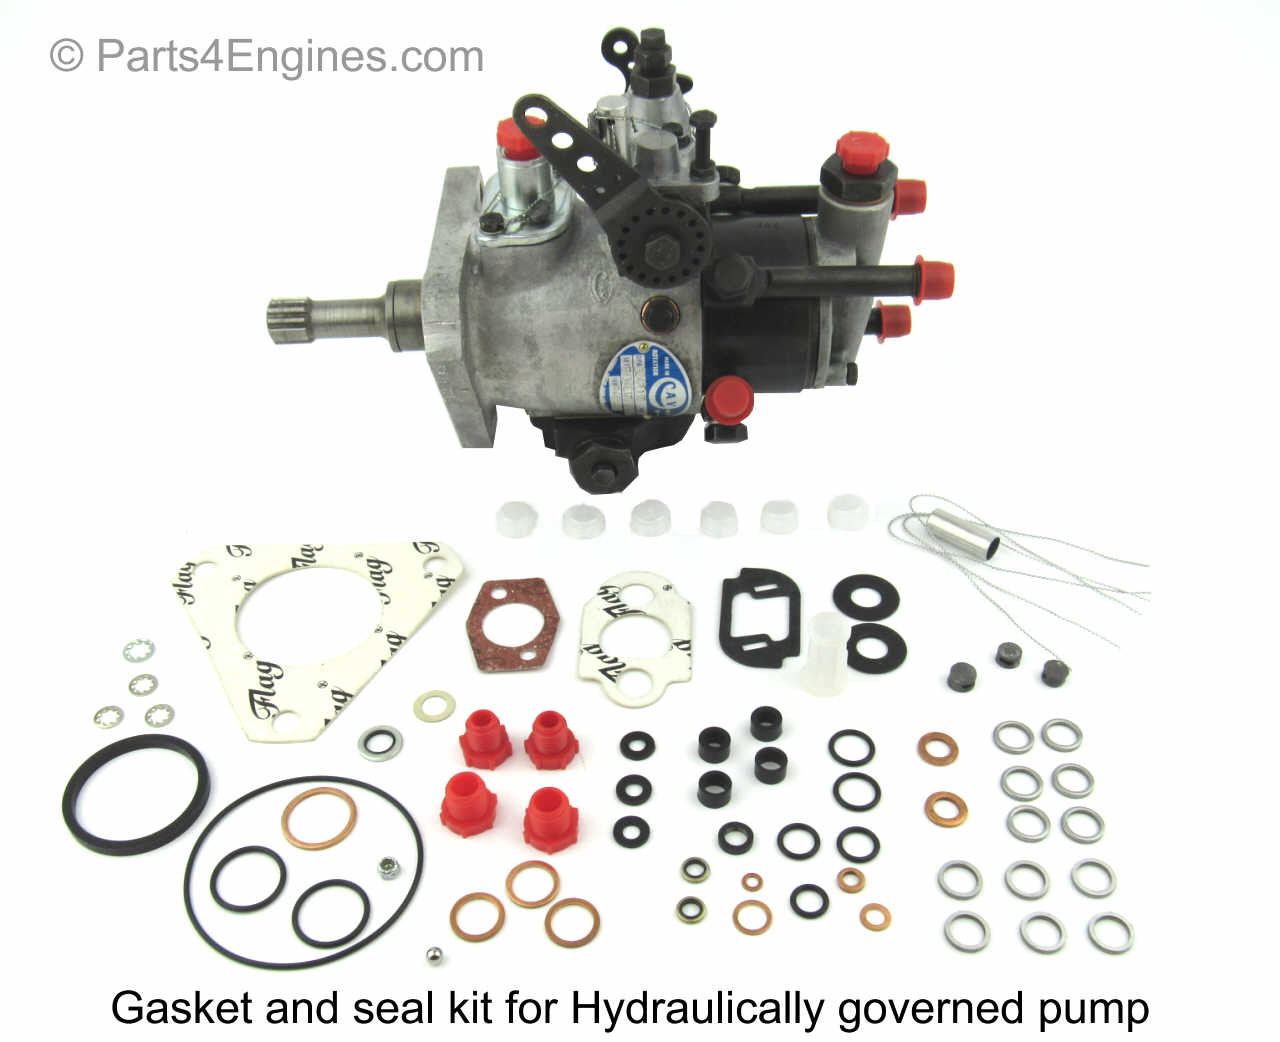 Perkins Gasket & Seal Kit for Hydraulic Governed Injection Pump - parts4engines.com